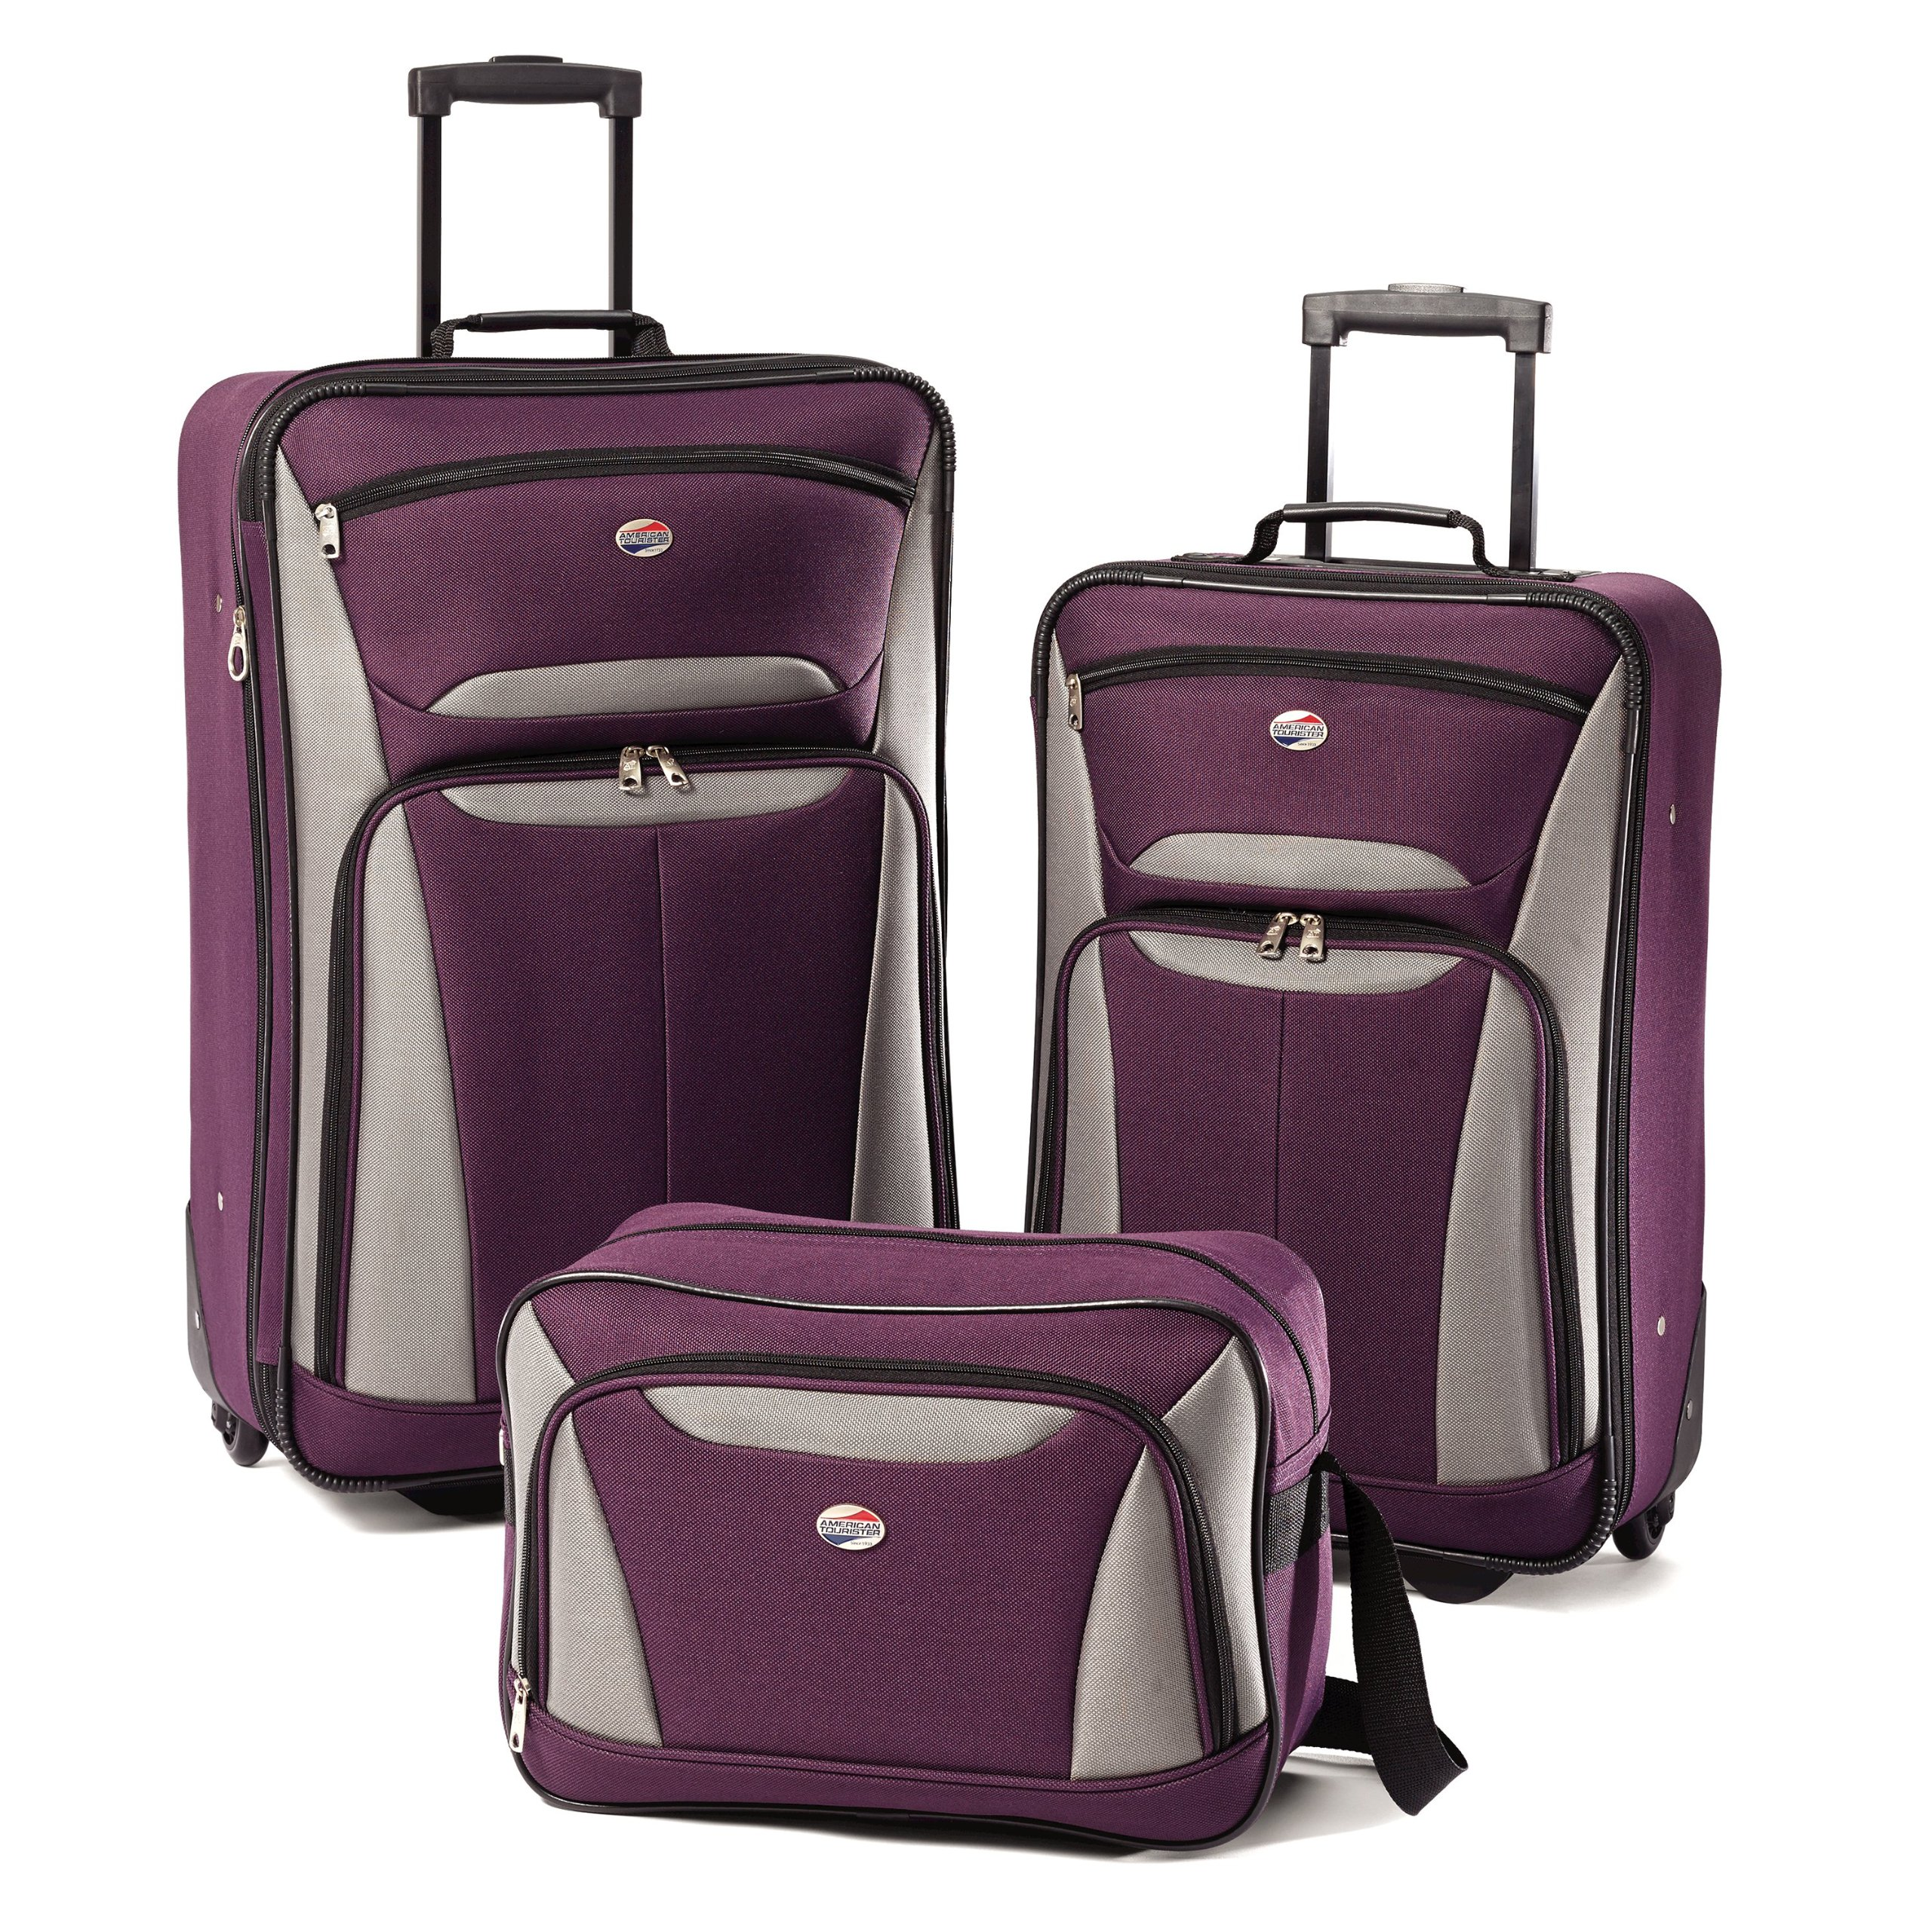 American Tourister Luggage Fieldbrook II 3 Piece Set, Purple/Grey